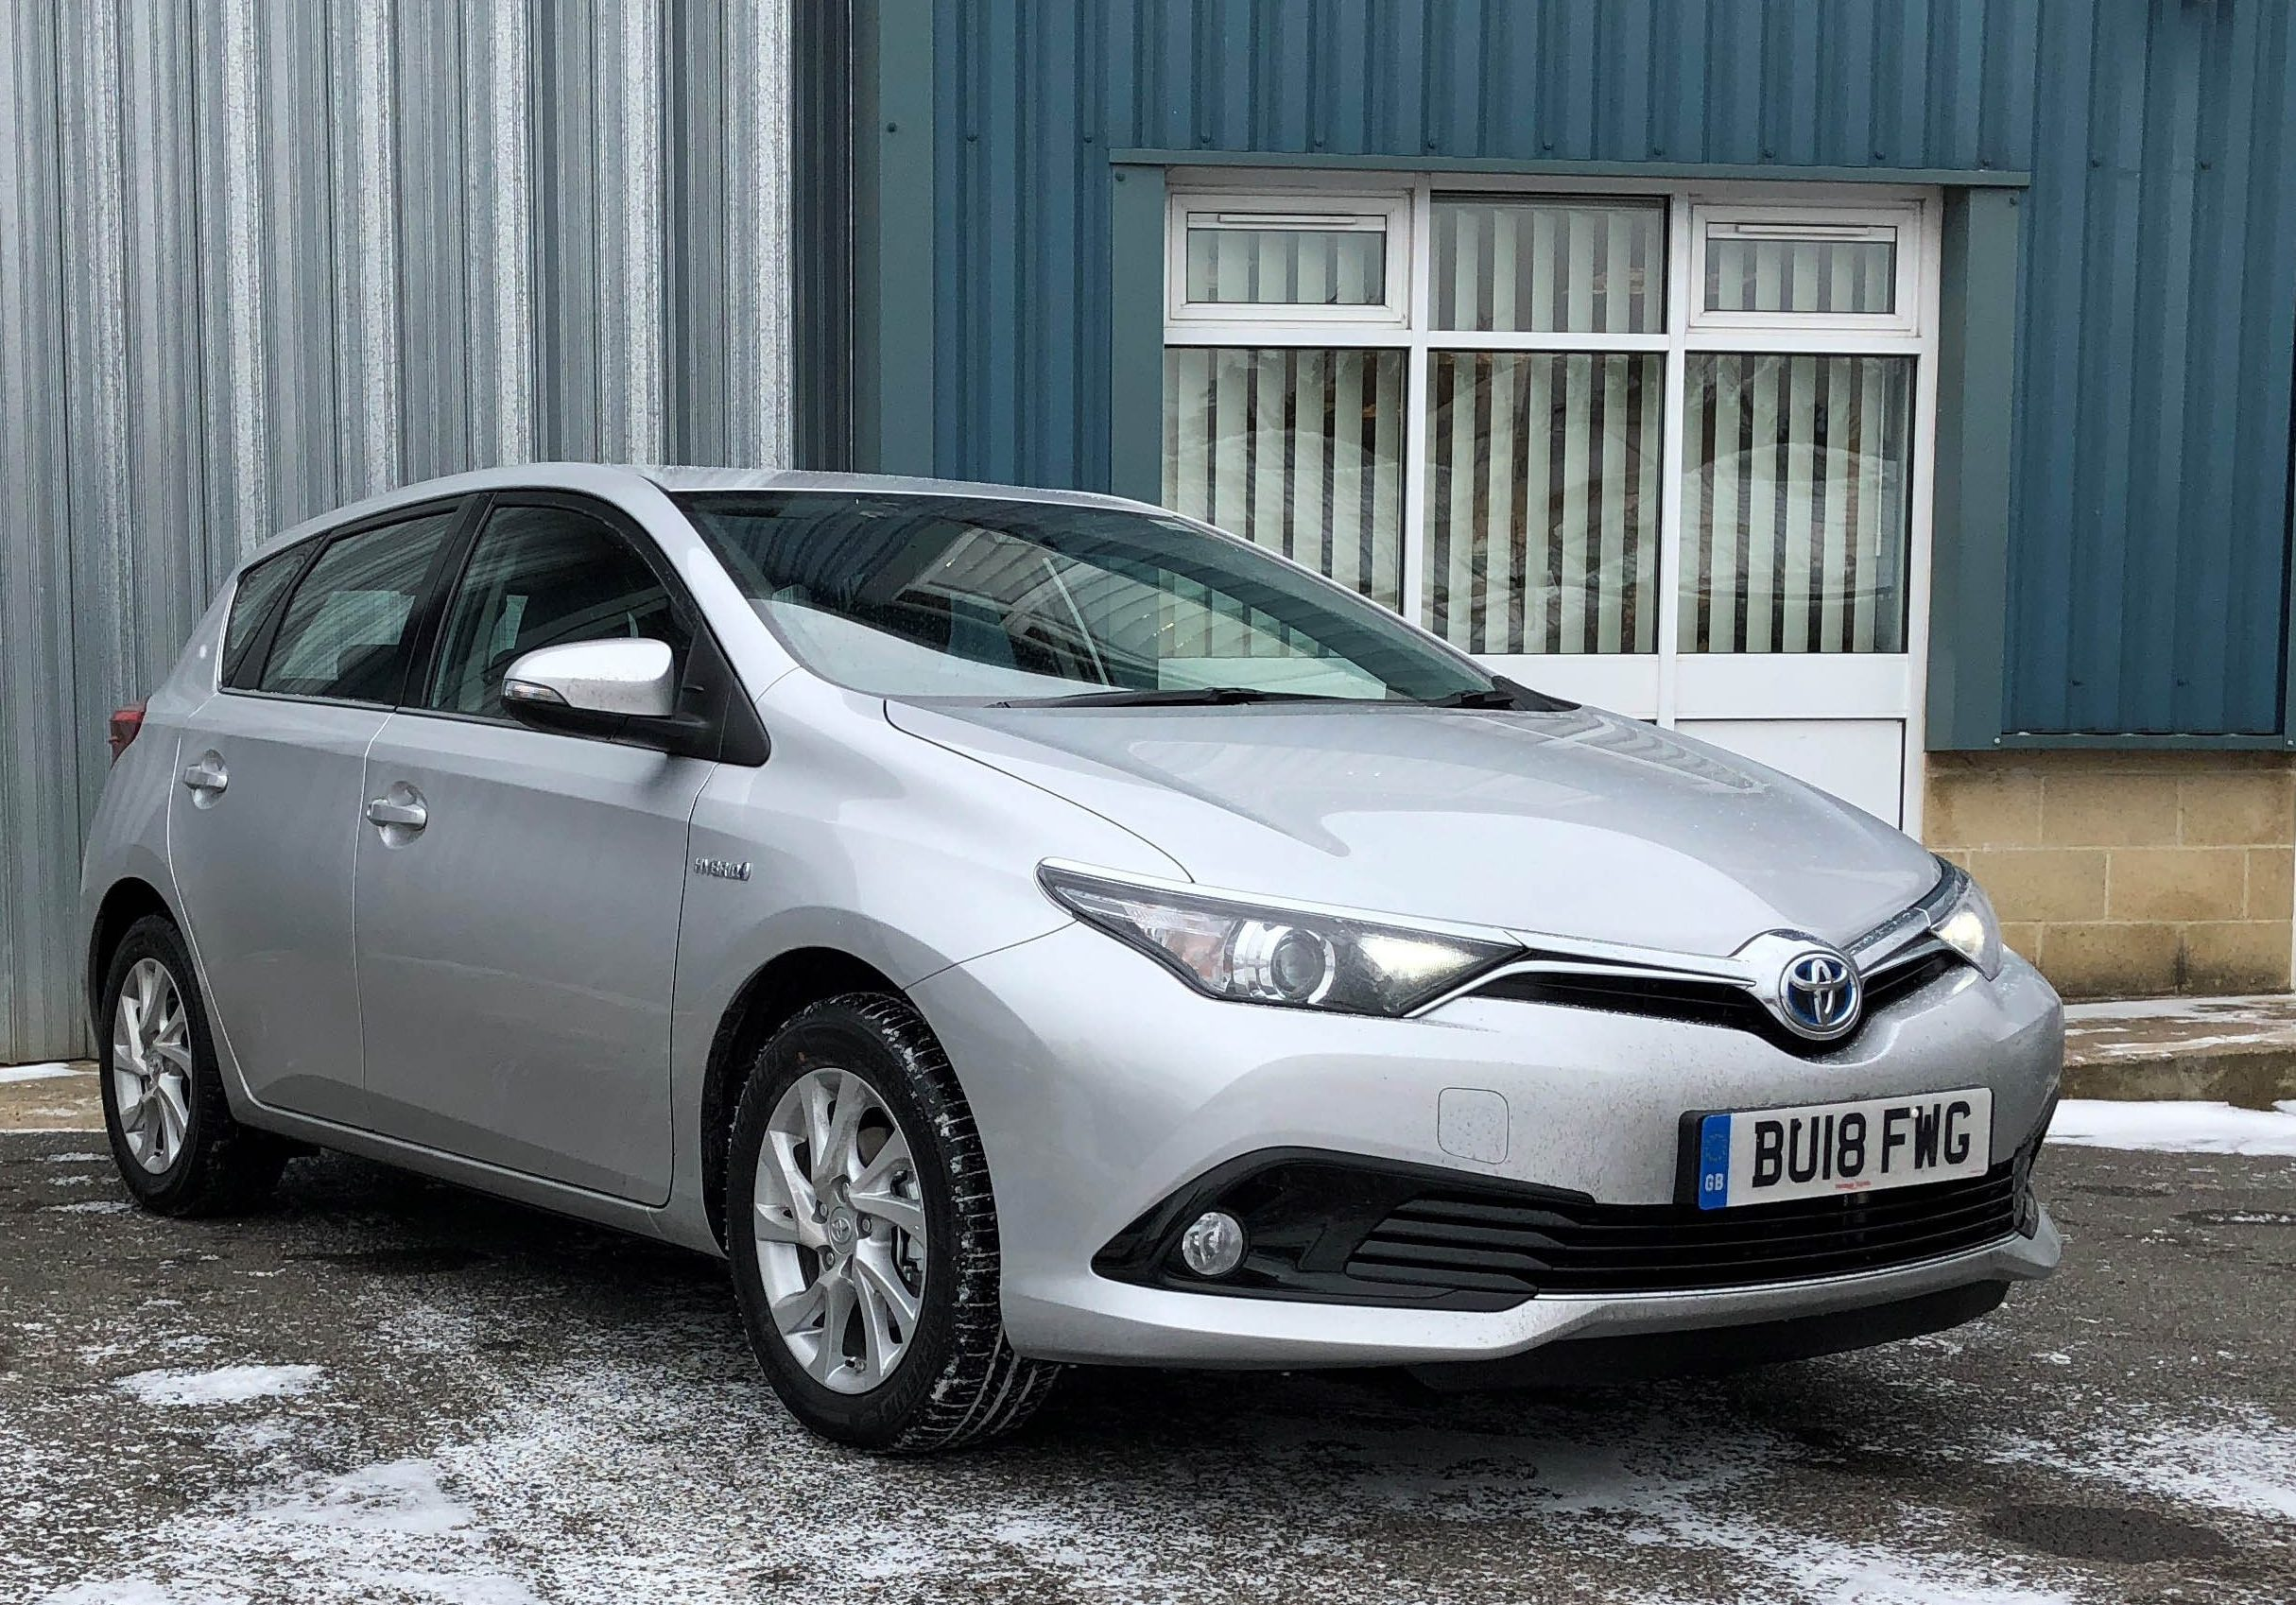 Hybrid Car for Hire